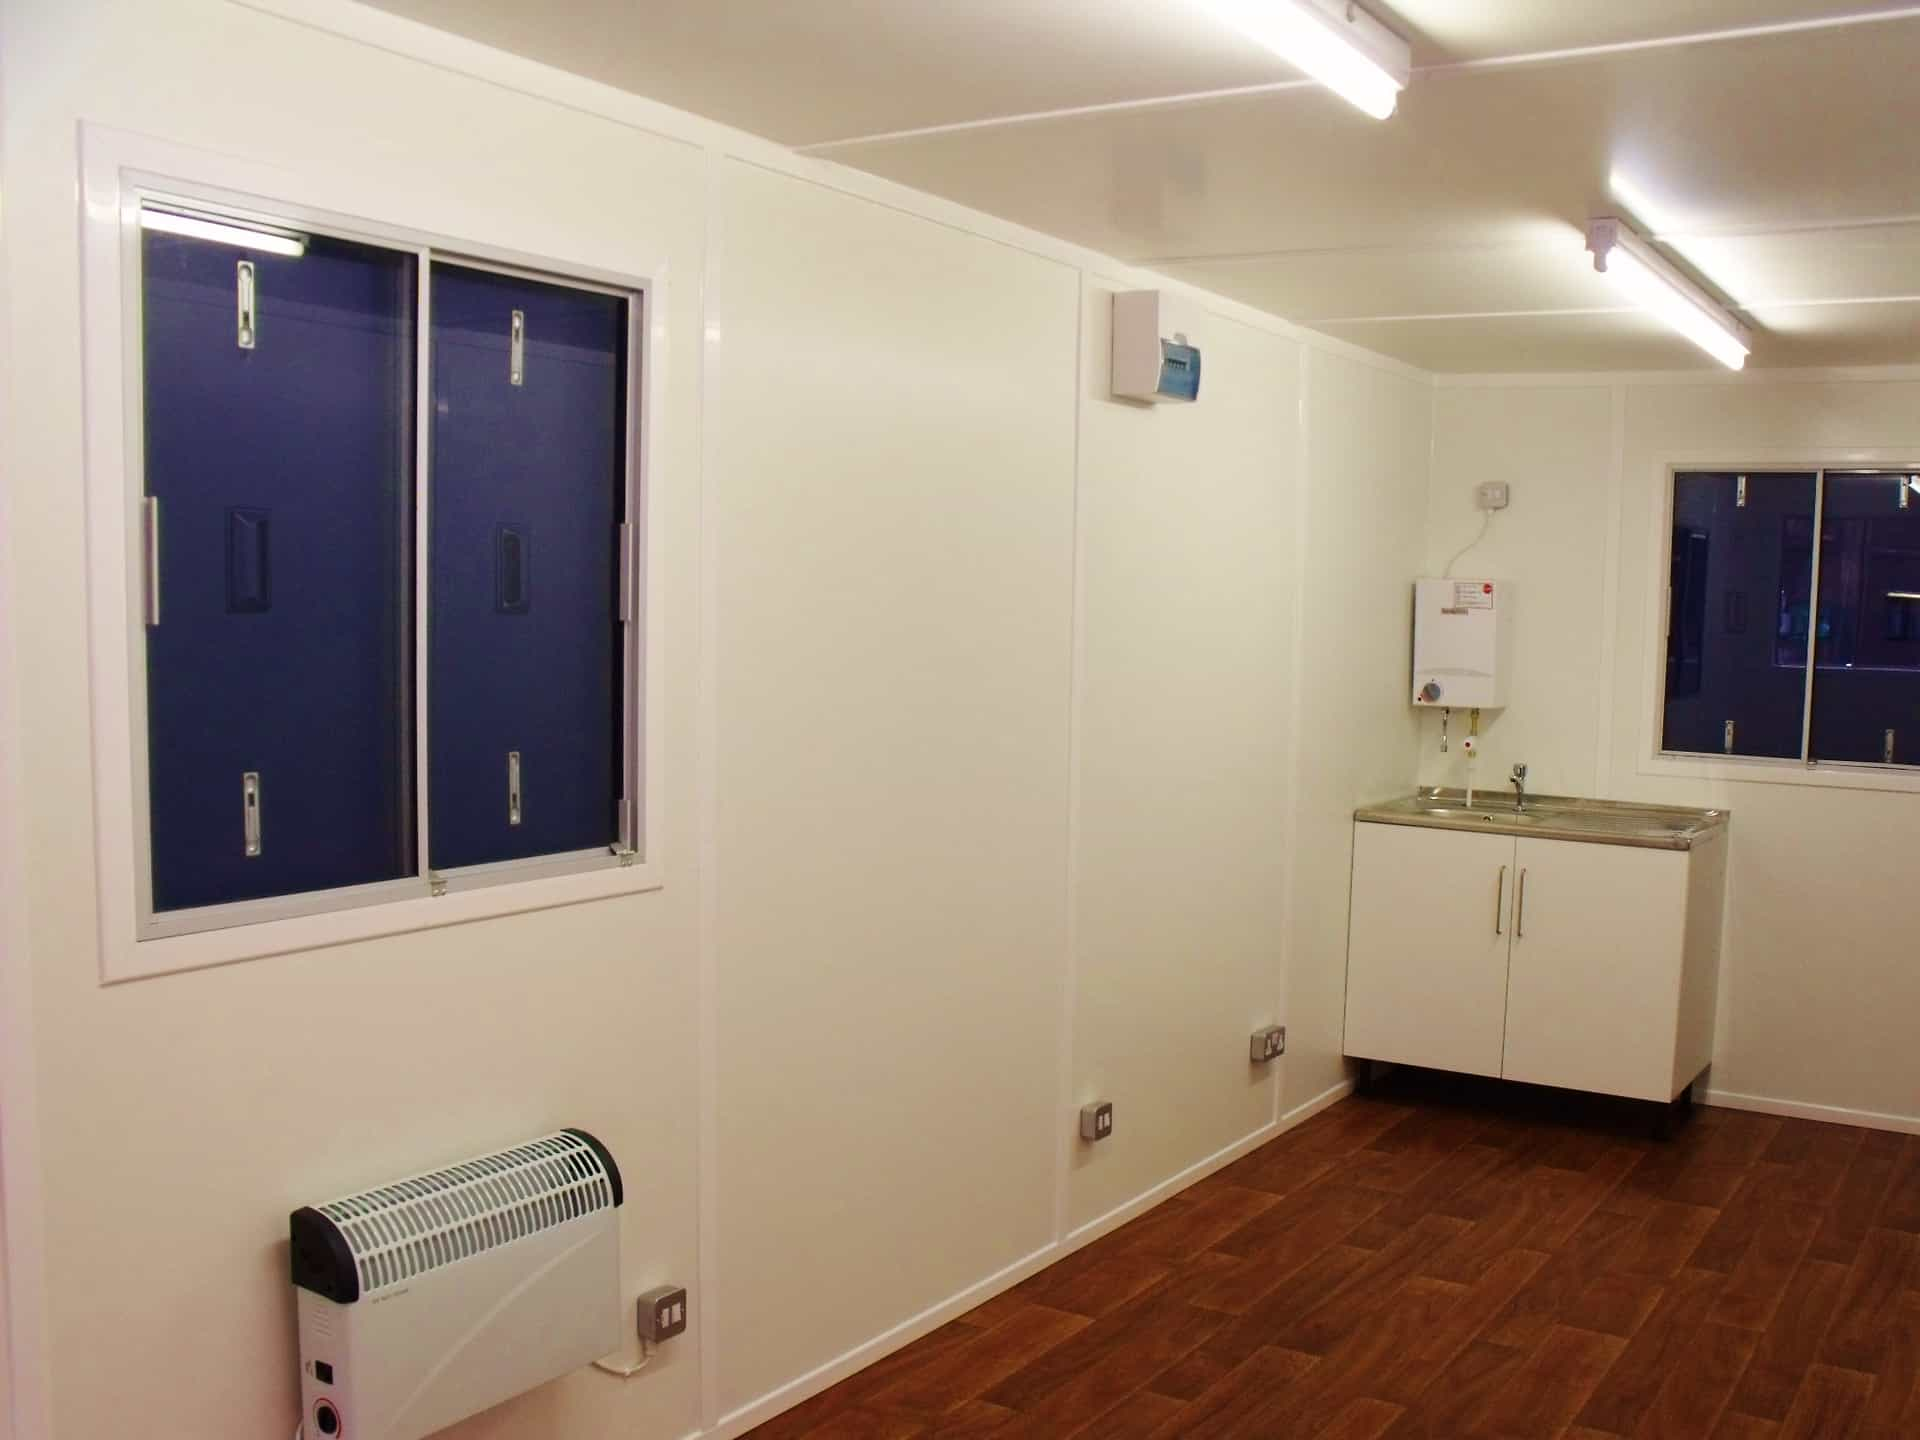 20ft shipping container conversions – canteen with sink